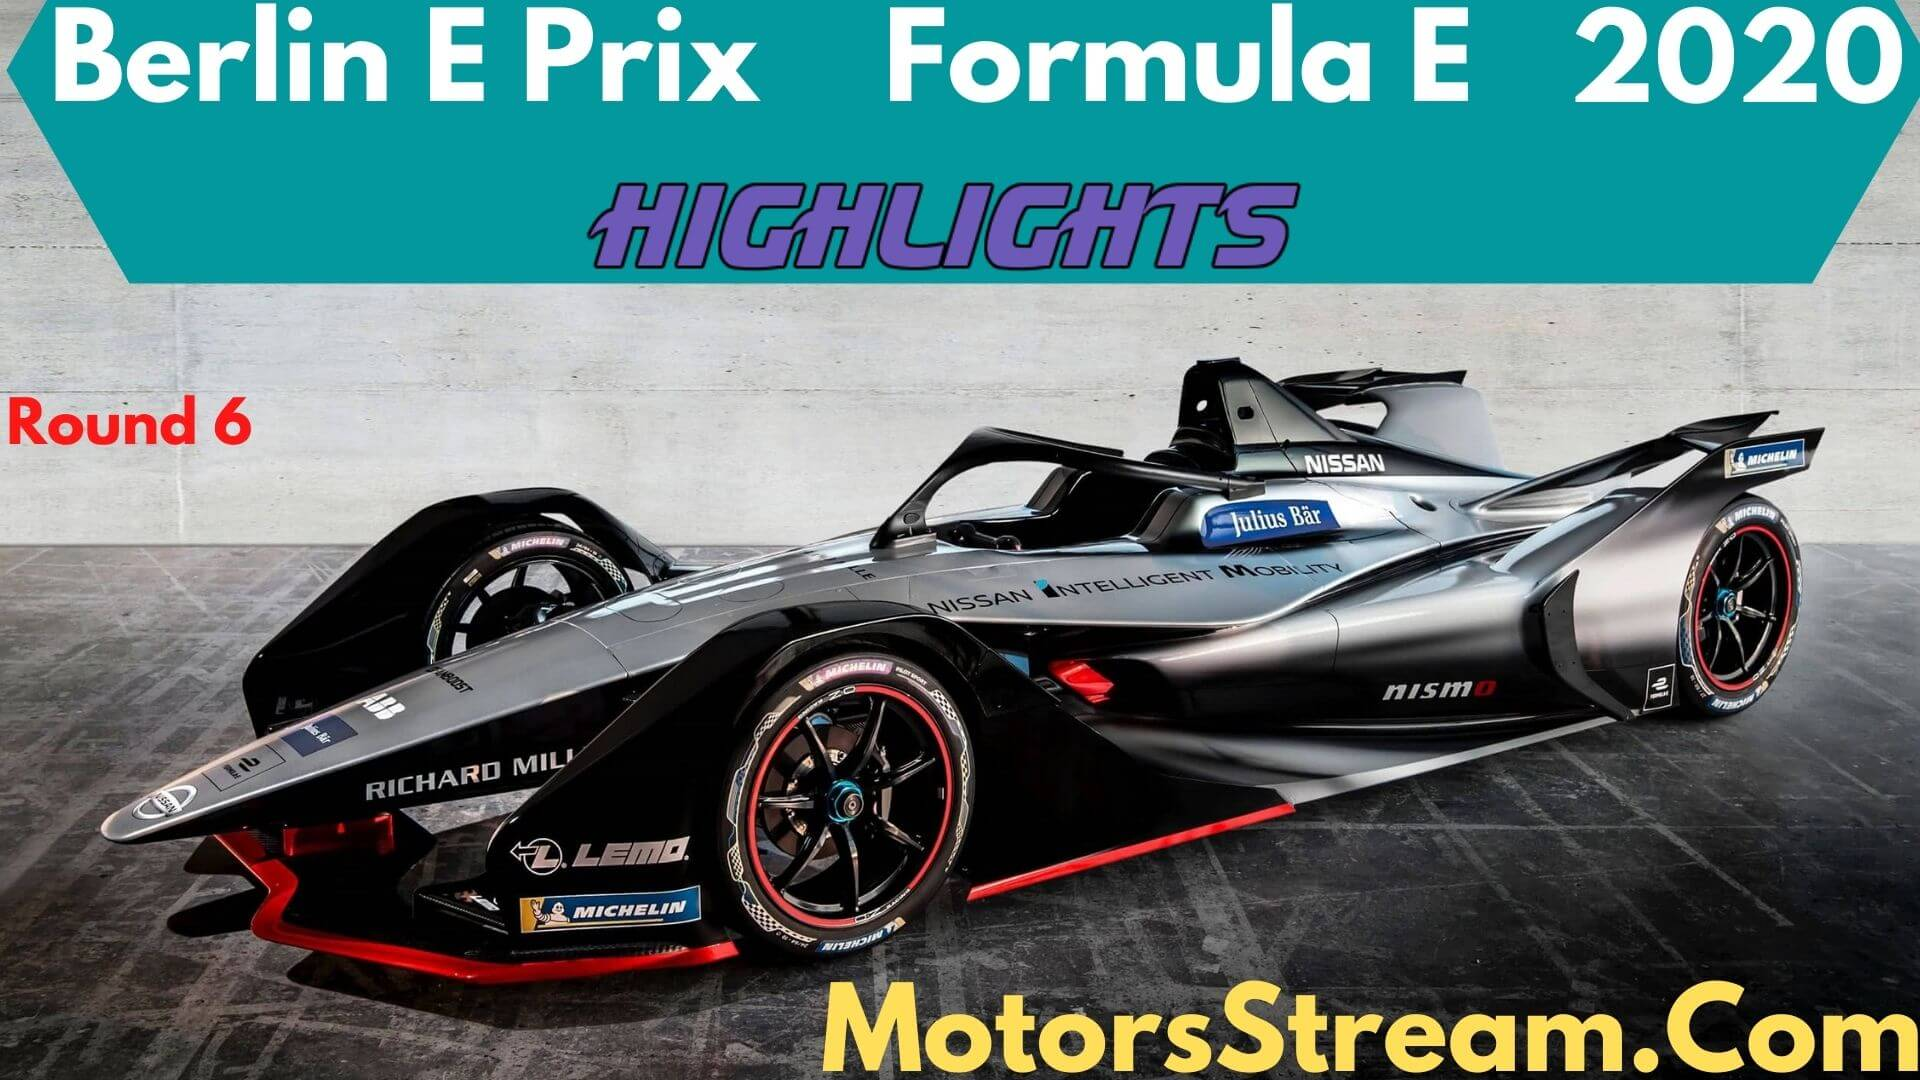 Berlin E Prix Round 6 Highlights 2020 Formula E